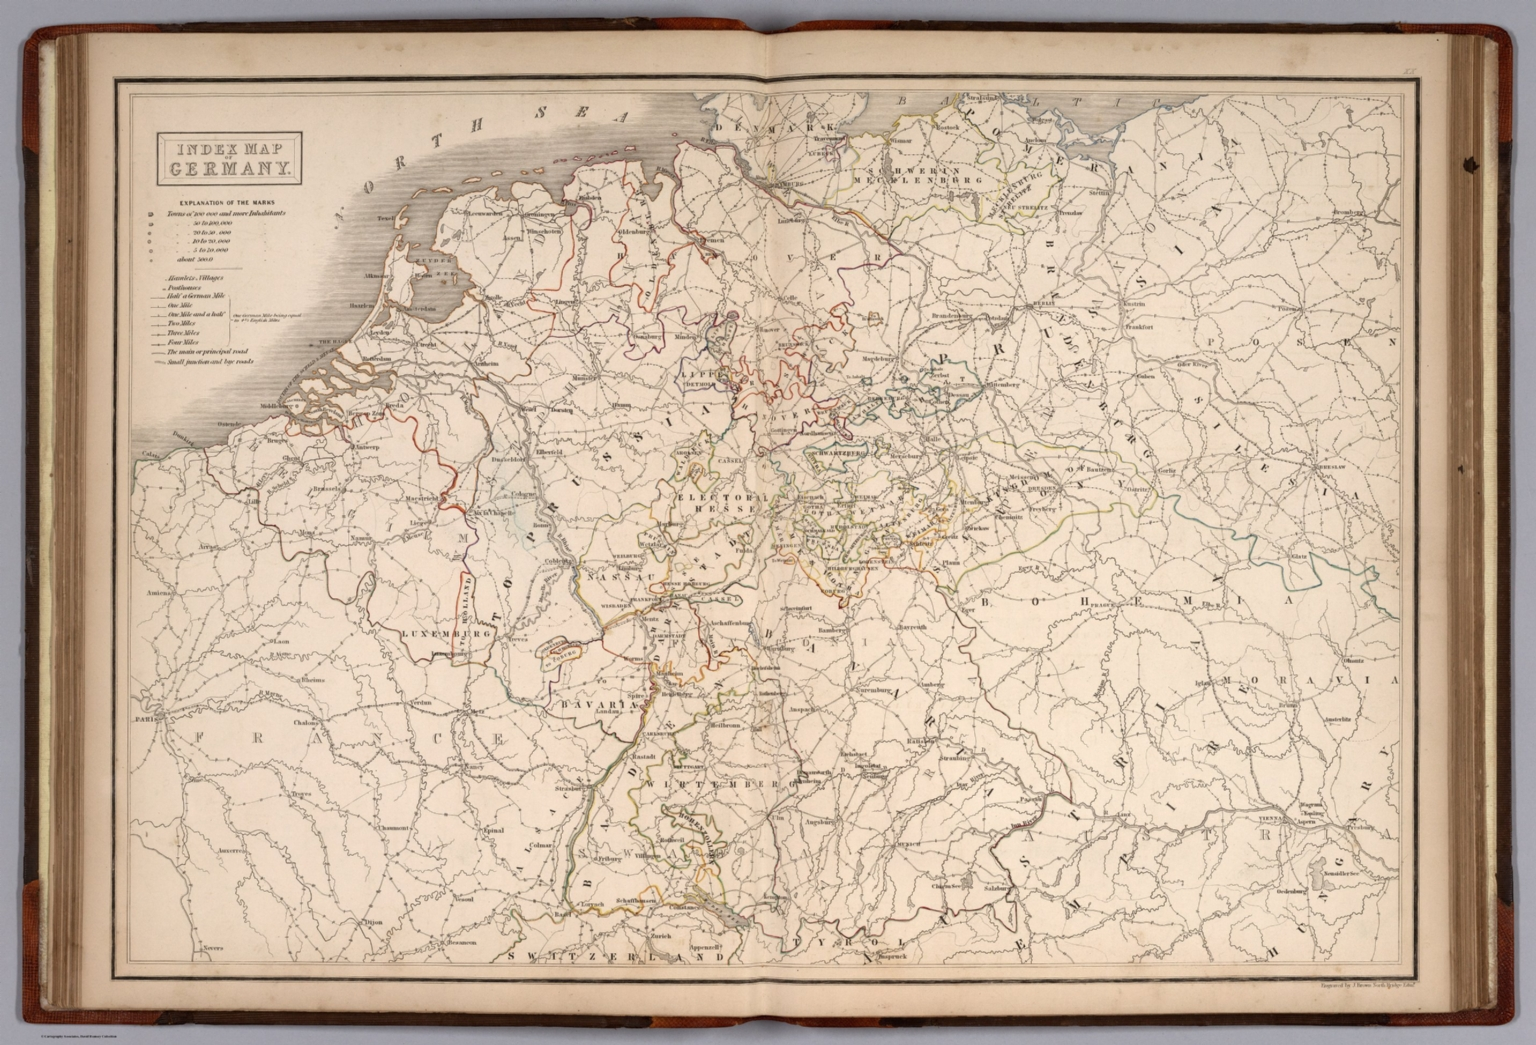 Index map of germany david rumsey historical map collection index map of germany gumiabroncs Image collections